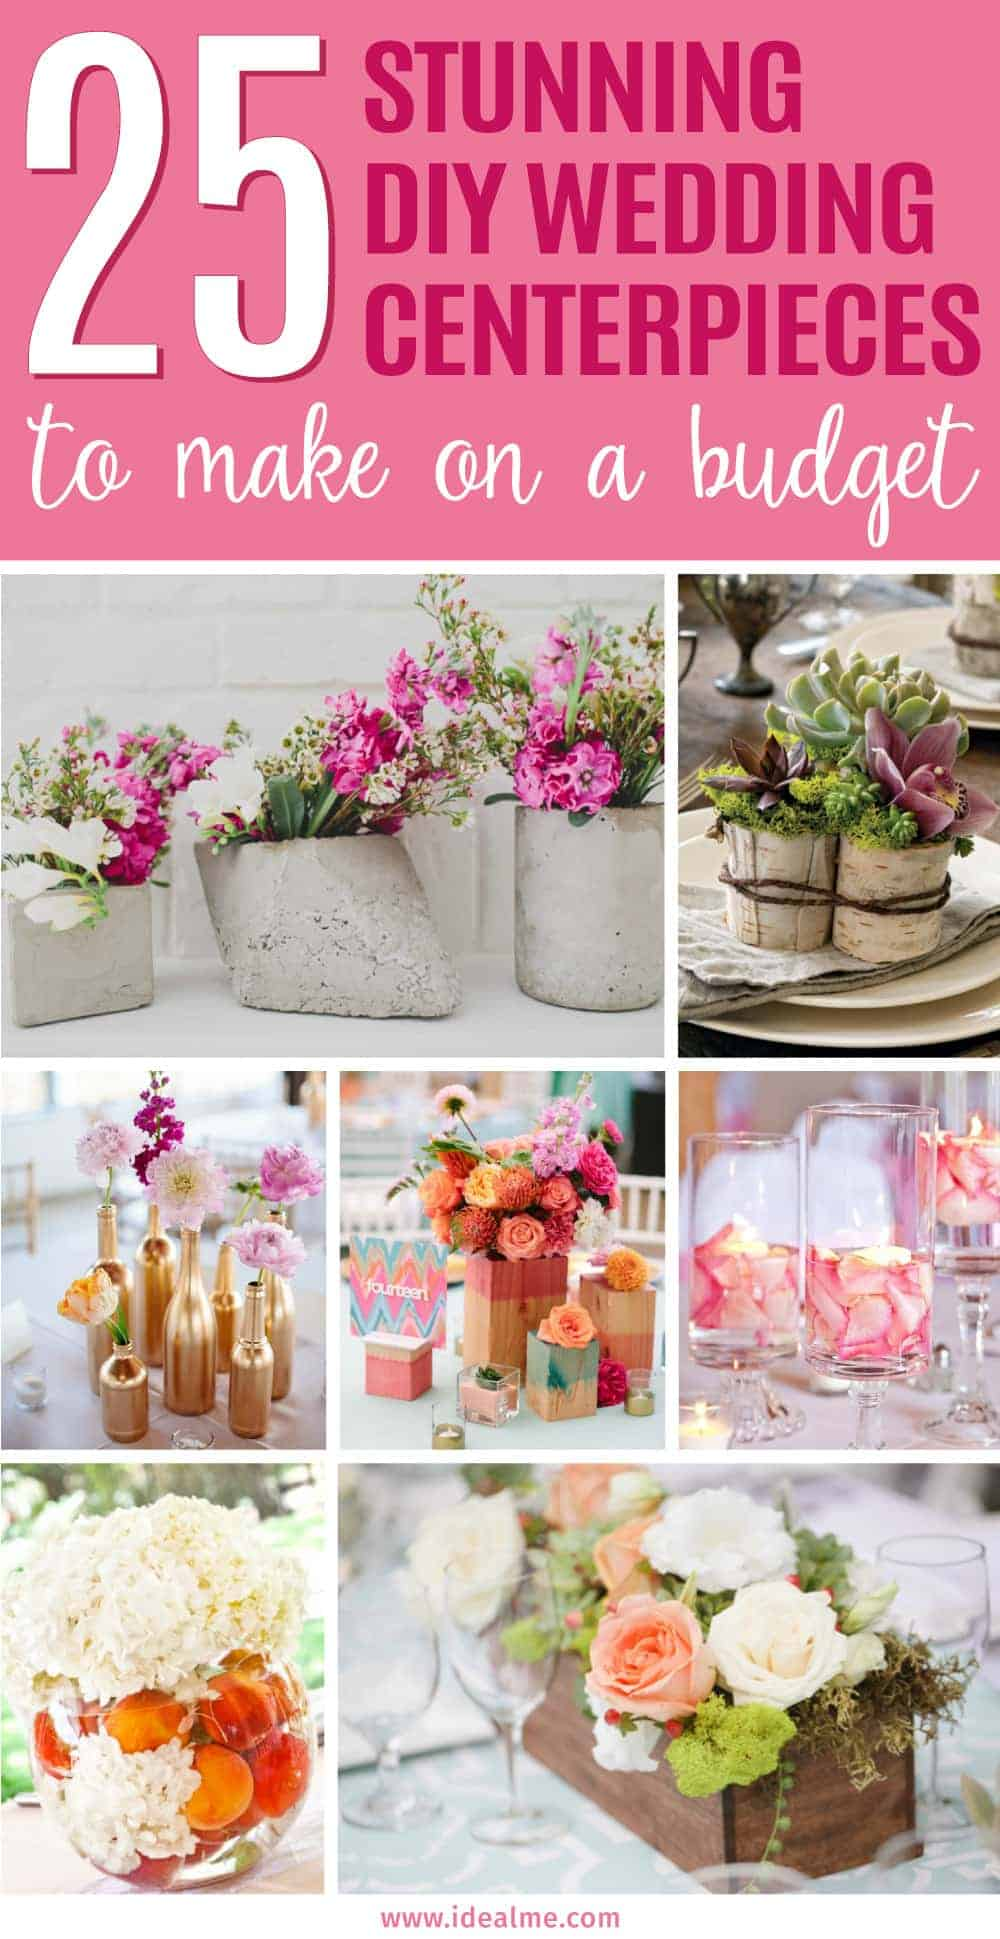 Believe it or not, you can create stunning centerpieces without spending much at all. We've found some beautiful DIY wedding centerpiece ideas that looking anything but cheap.